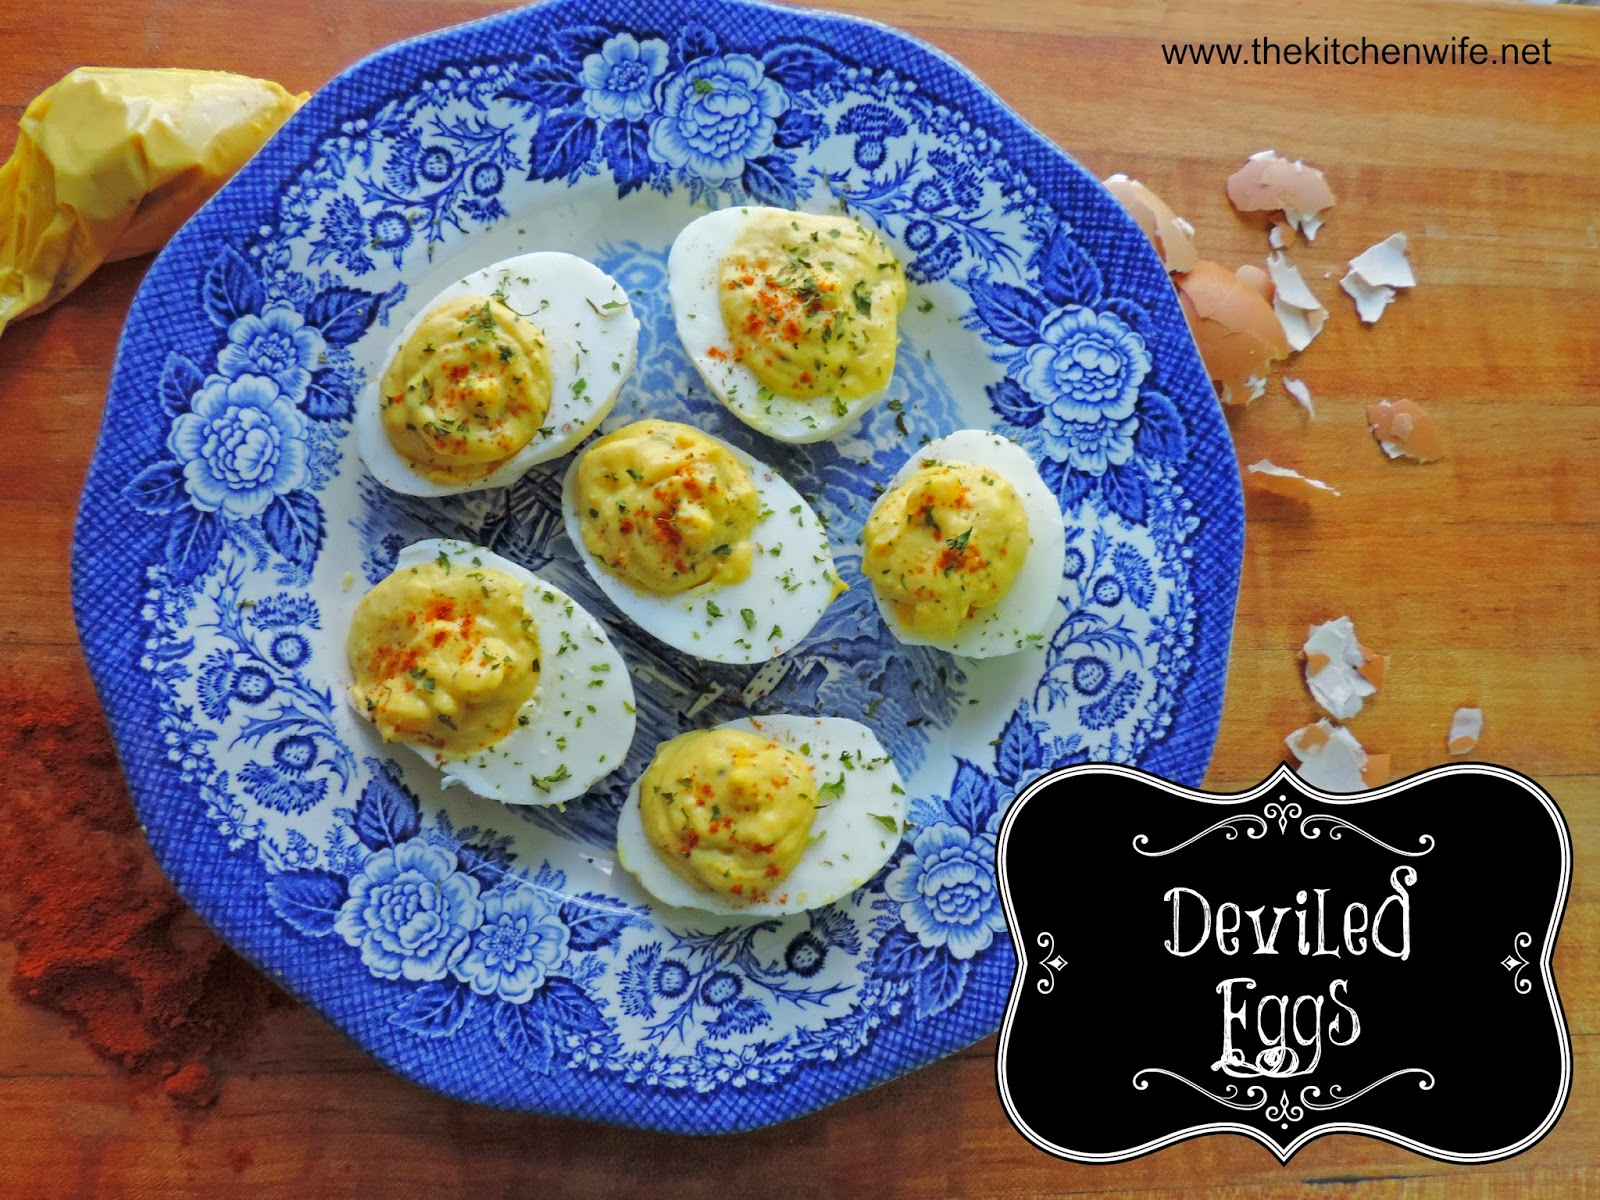 The finished deviled eggs on a plate with the title in the bottom right hand corner.